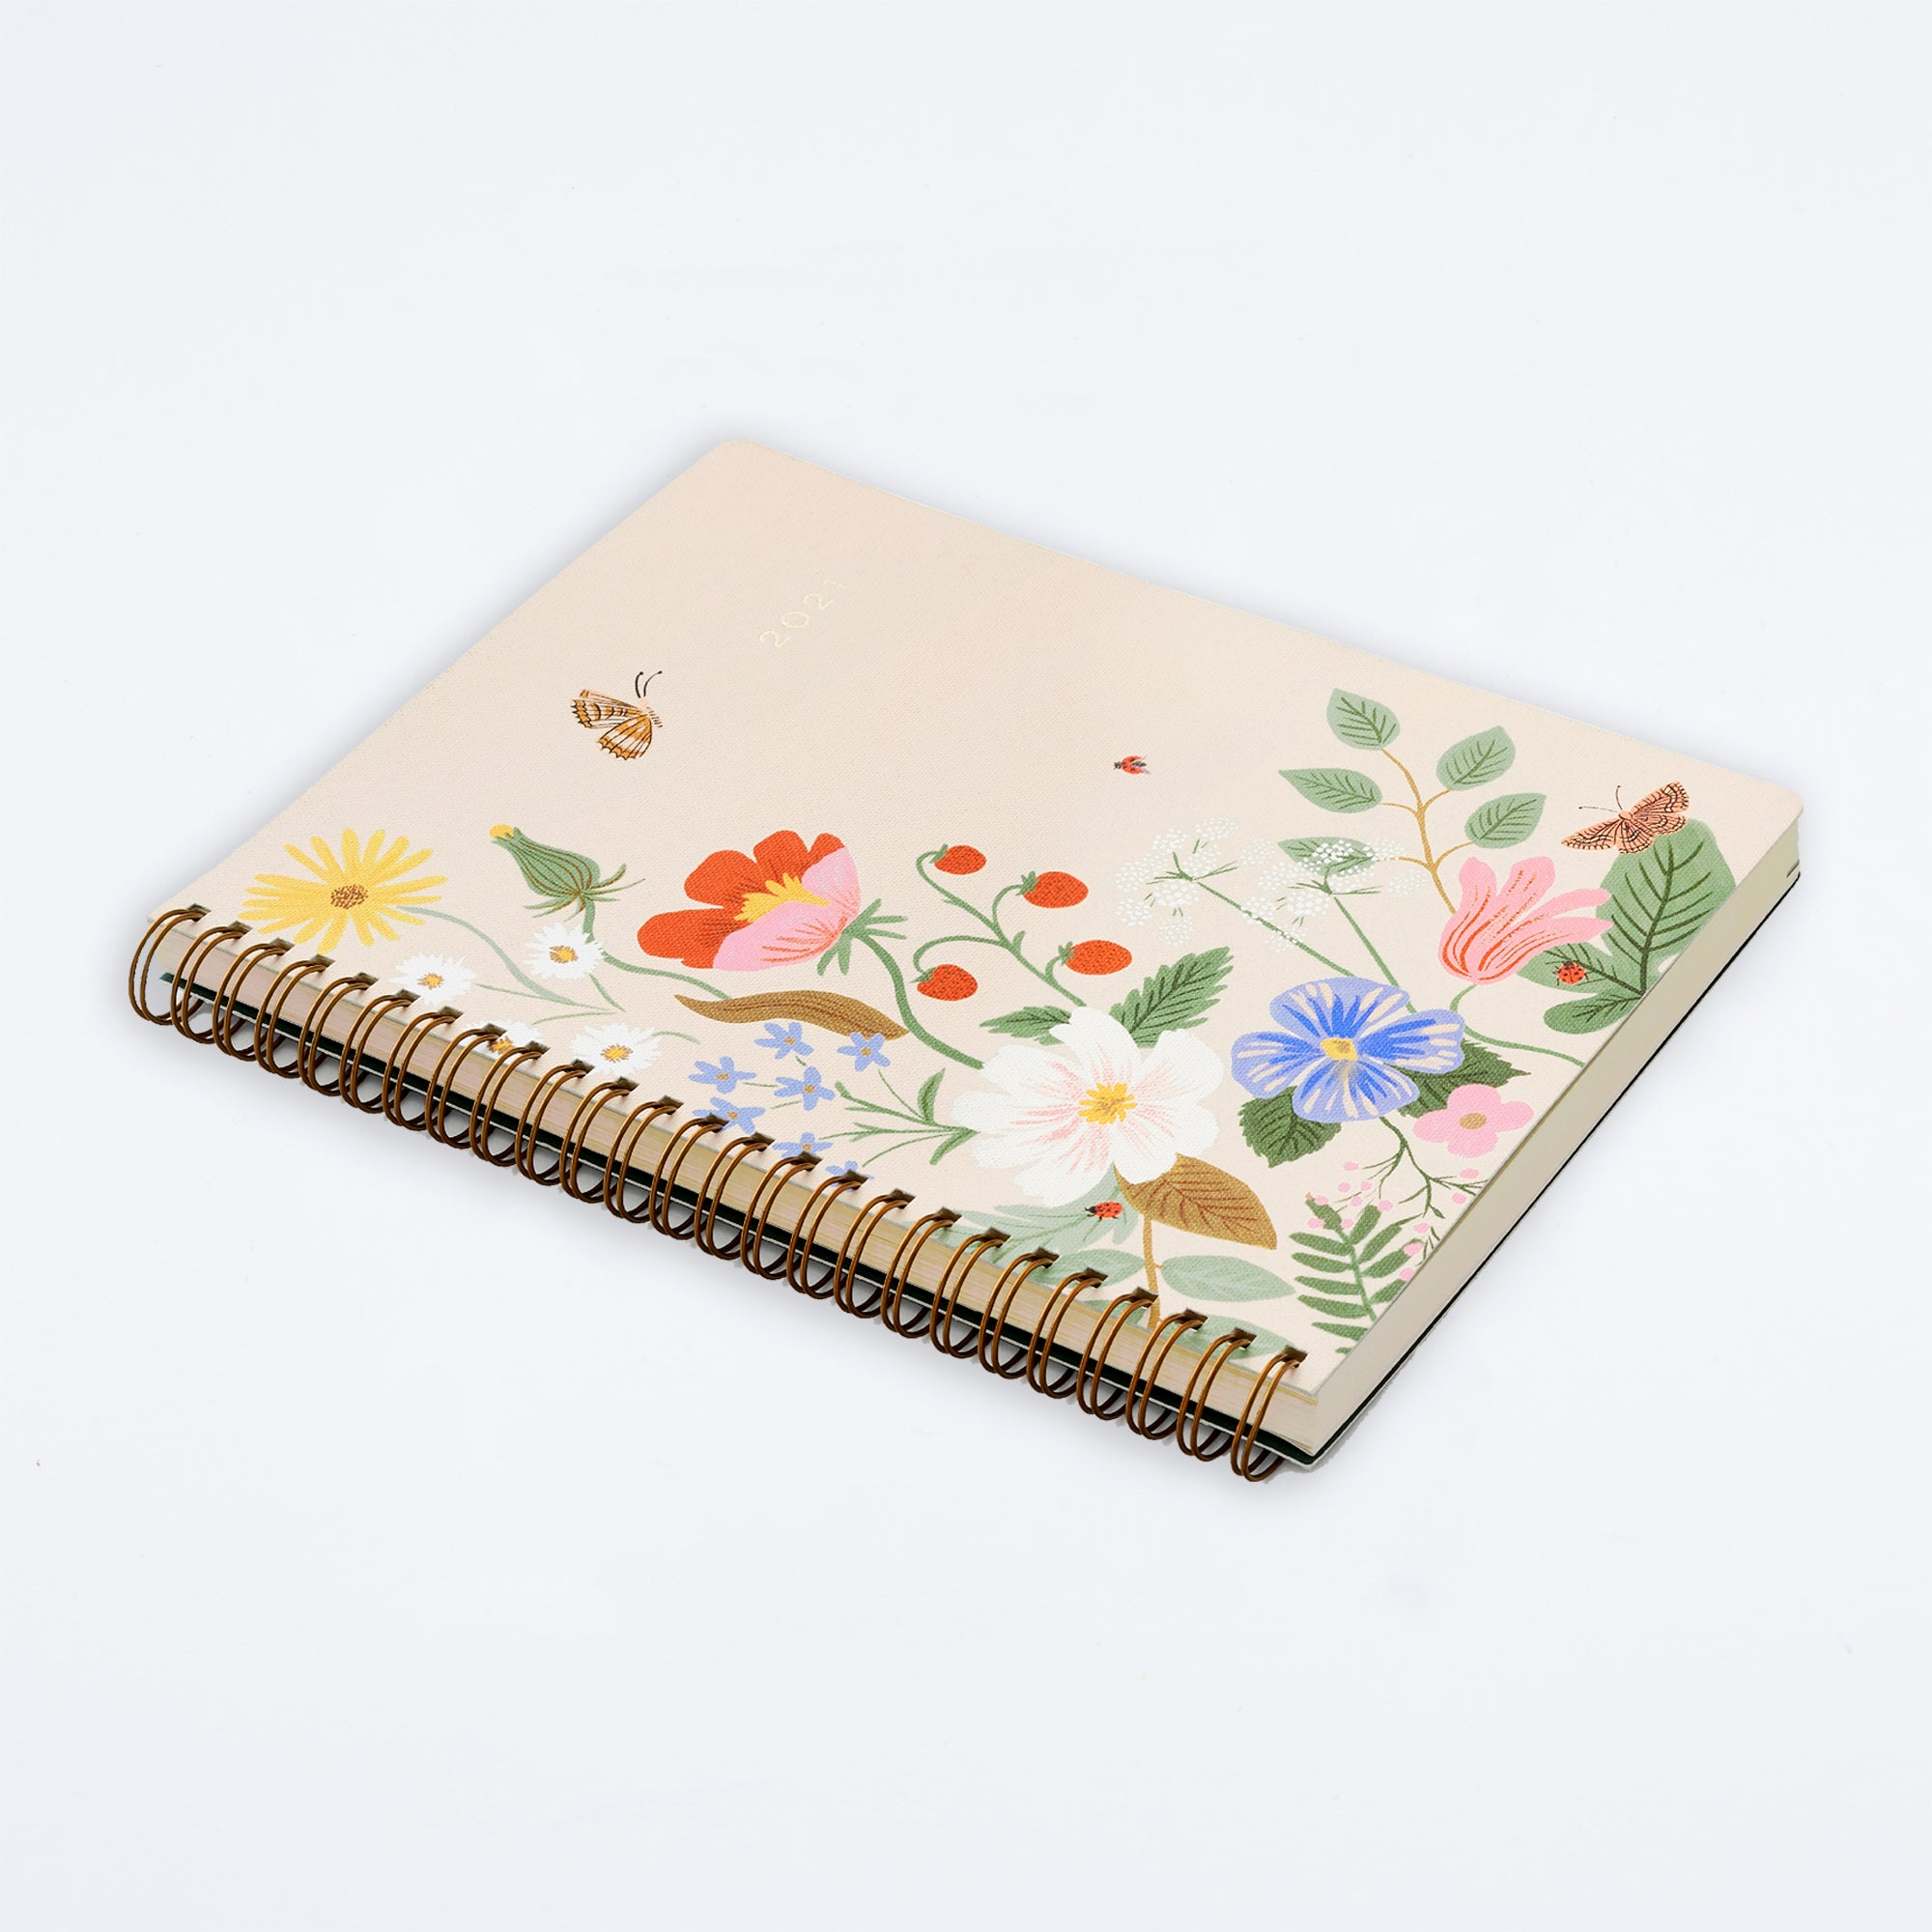 2021 Strawberry Fields Softcover Spiral Planner